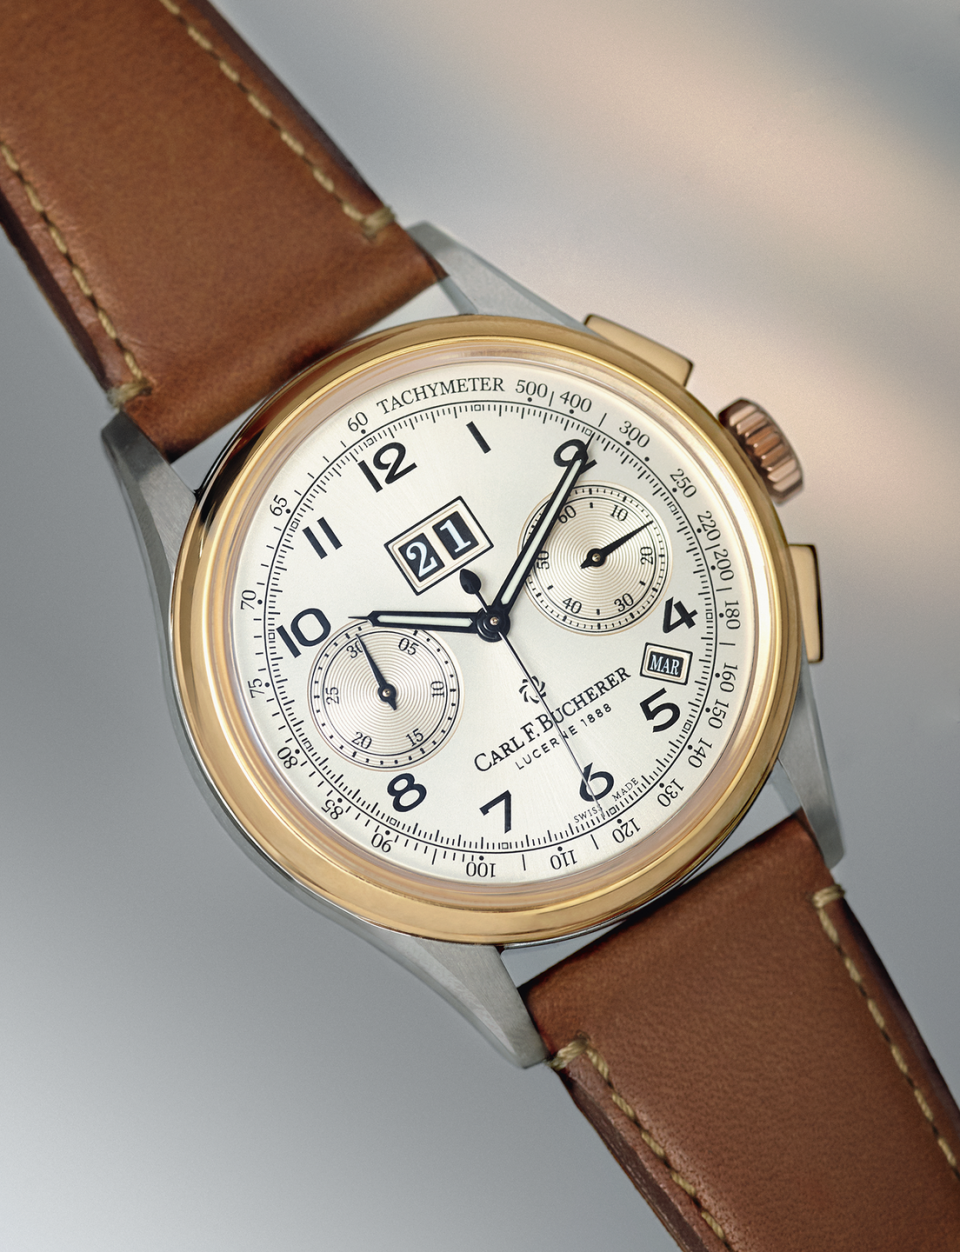 "<p>Heritage BiCompax Annual</p><p><a class=""link rapid-noclick-resp"" href=""https://www.bucherer.com/uk/en/watches/our-brands/carl-f-bucherer?categories=watches&filter=%7Bwatches%7D%7Bfacetedsecondlevelcategory_s%7D%7Bcarl-f-bucherer%7D&gclid=CjwKCAiA8qLvBRAbEiwAE_ZzPbqj1QvVqlT8IWv2qdsghzKQpRx4Ib6hu4VMb6IvC6SIZf-Xghtj7RoC8KkQAvD_BwE&sort=relevance#activePage=0"" rel=""nofollow noopener"" target=""_blank"" data-ylk=""slk:SHOP"">SHOP</a></p><p> The resurgent independent watchmaker's latest model ticks off a number of current trends. The 41mm Heritage Bicompax Annual is based on a Fifties' archive piece with a ""bicompax"" two-counter dial, giving it a mid-century feel (tick); it's available in two-tone steel and rose gold (tick); and it's also limited (tick). There'll be 888 of both the two-tone and steel models, determined by the company's founding year of 1888, rather than out of deference to gamblers. It's decent value, too. Behind that balanced dial, there's a clever movement fuelling a chronograph and an annual calendar with date and month indications that only need adjusting on 1 March. The steel is a touch over £5k, with a premium for the solid gold detailing in the two-tone. Modest by the industry's lengthy yardstick.</p><p> £8,000; <a href=""https://www.carl-f-bucherer.com/en?gclid=CjwKCAiA8qLvBRAbEiwAE_ZzPfih-oZpDgK_Sn65iKAO1F-OEzbDri_2DdjUWB5zuno7Fw0kl36oehoCamIQAvD_BwE"" rel=""nofollow noopener"" target=""_blank"" data-ylk=""slk:carl-f-bucherer.com"" class=""link rapid-noclick-resp"">carl-f-bucherer.com</a><br></p>"